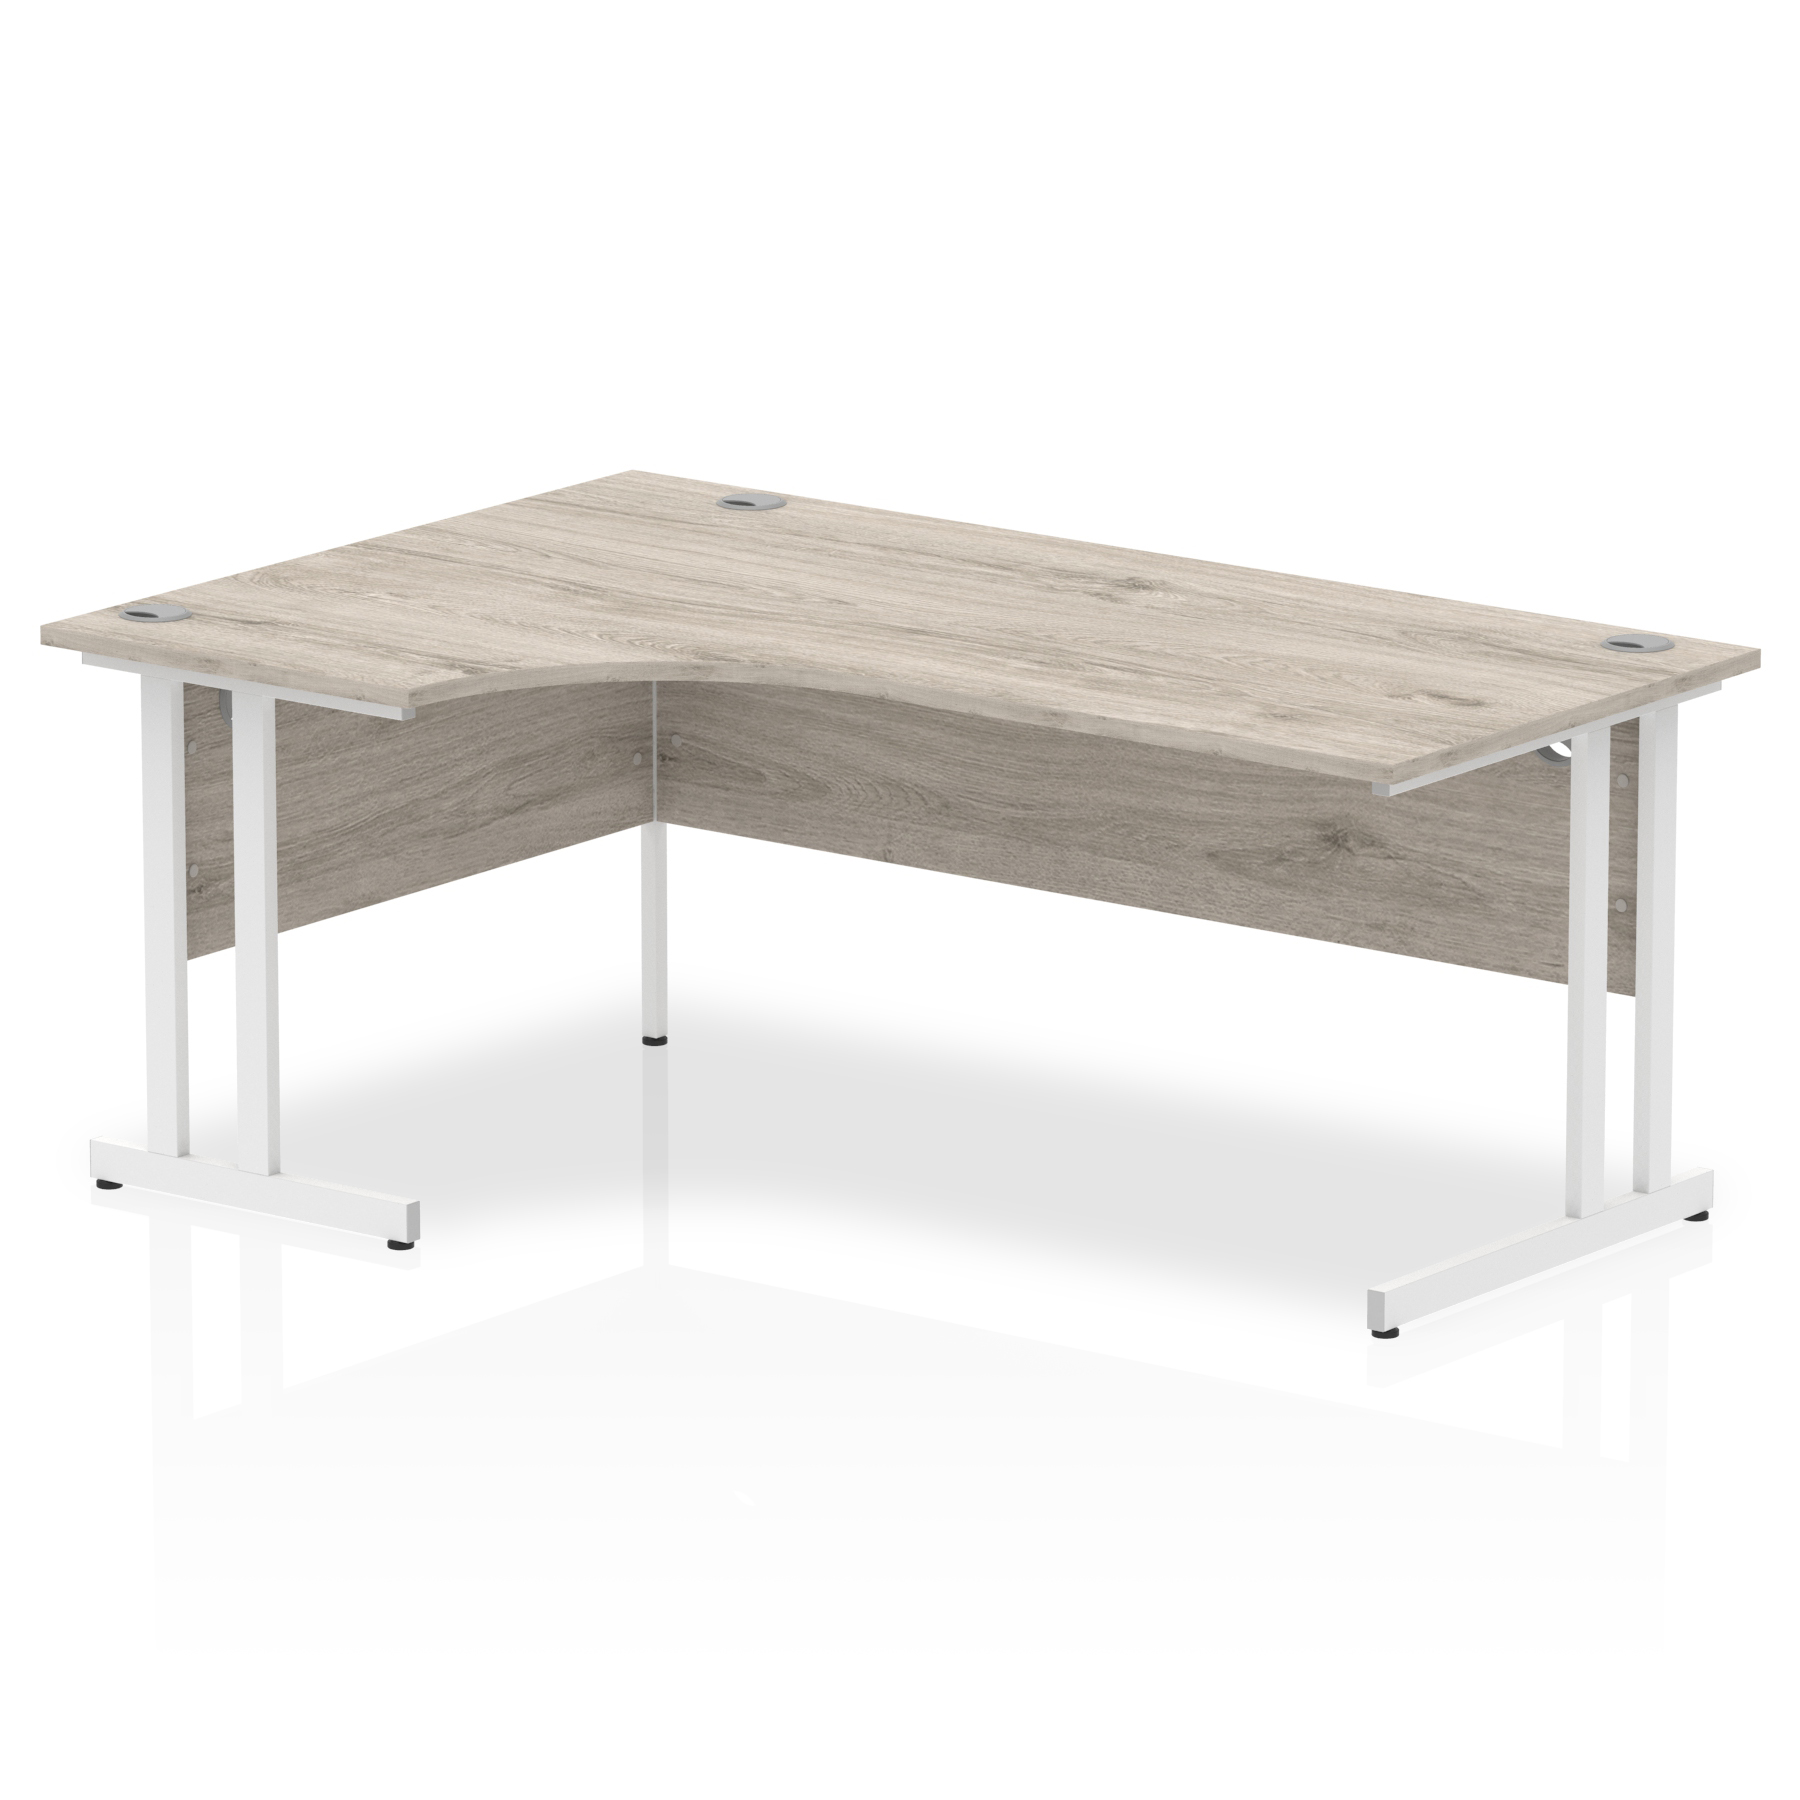 Trexus Radial Desk Left Hand White Cantilever Leg 1800mm Grey Oak Ref I003528